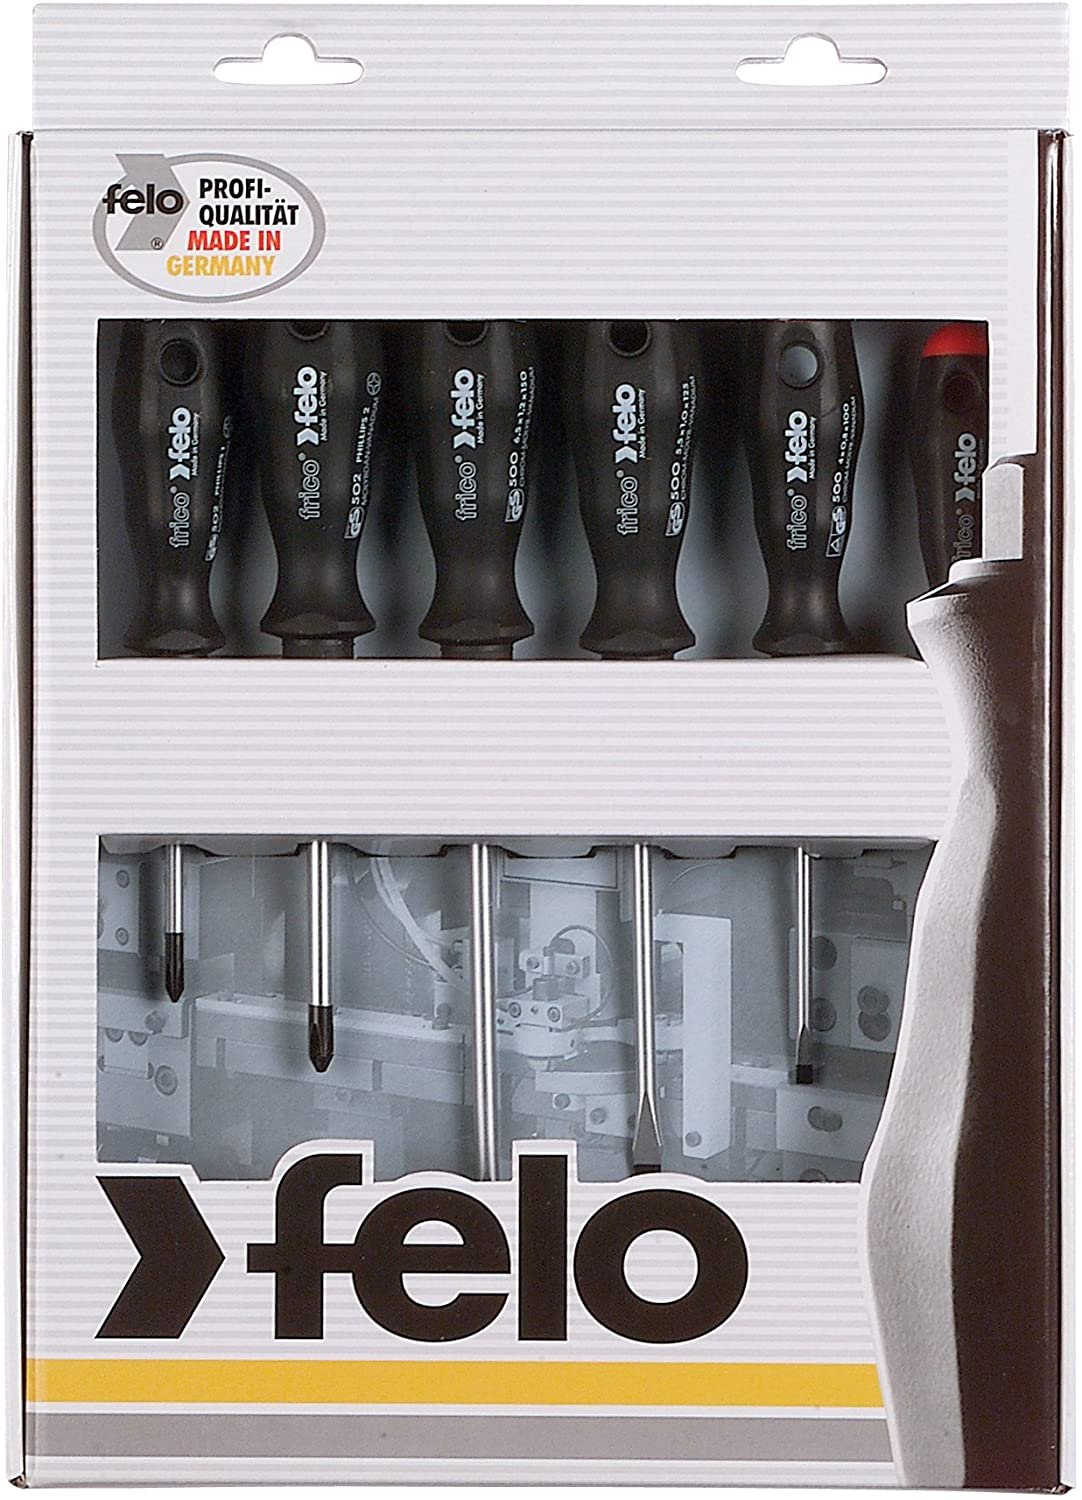 Felo 0715750174 Set of 6 Slotted & Phillips Screwdrivers, 500 Series